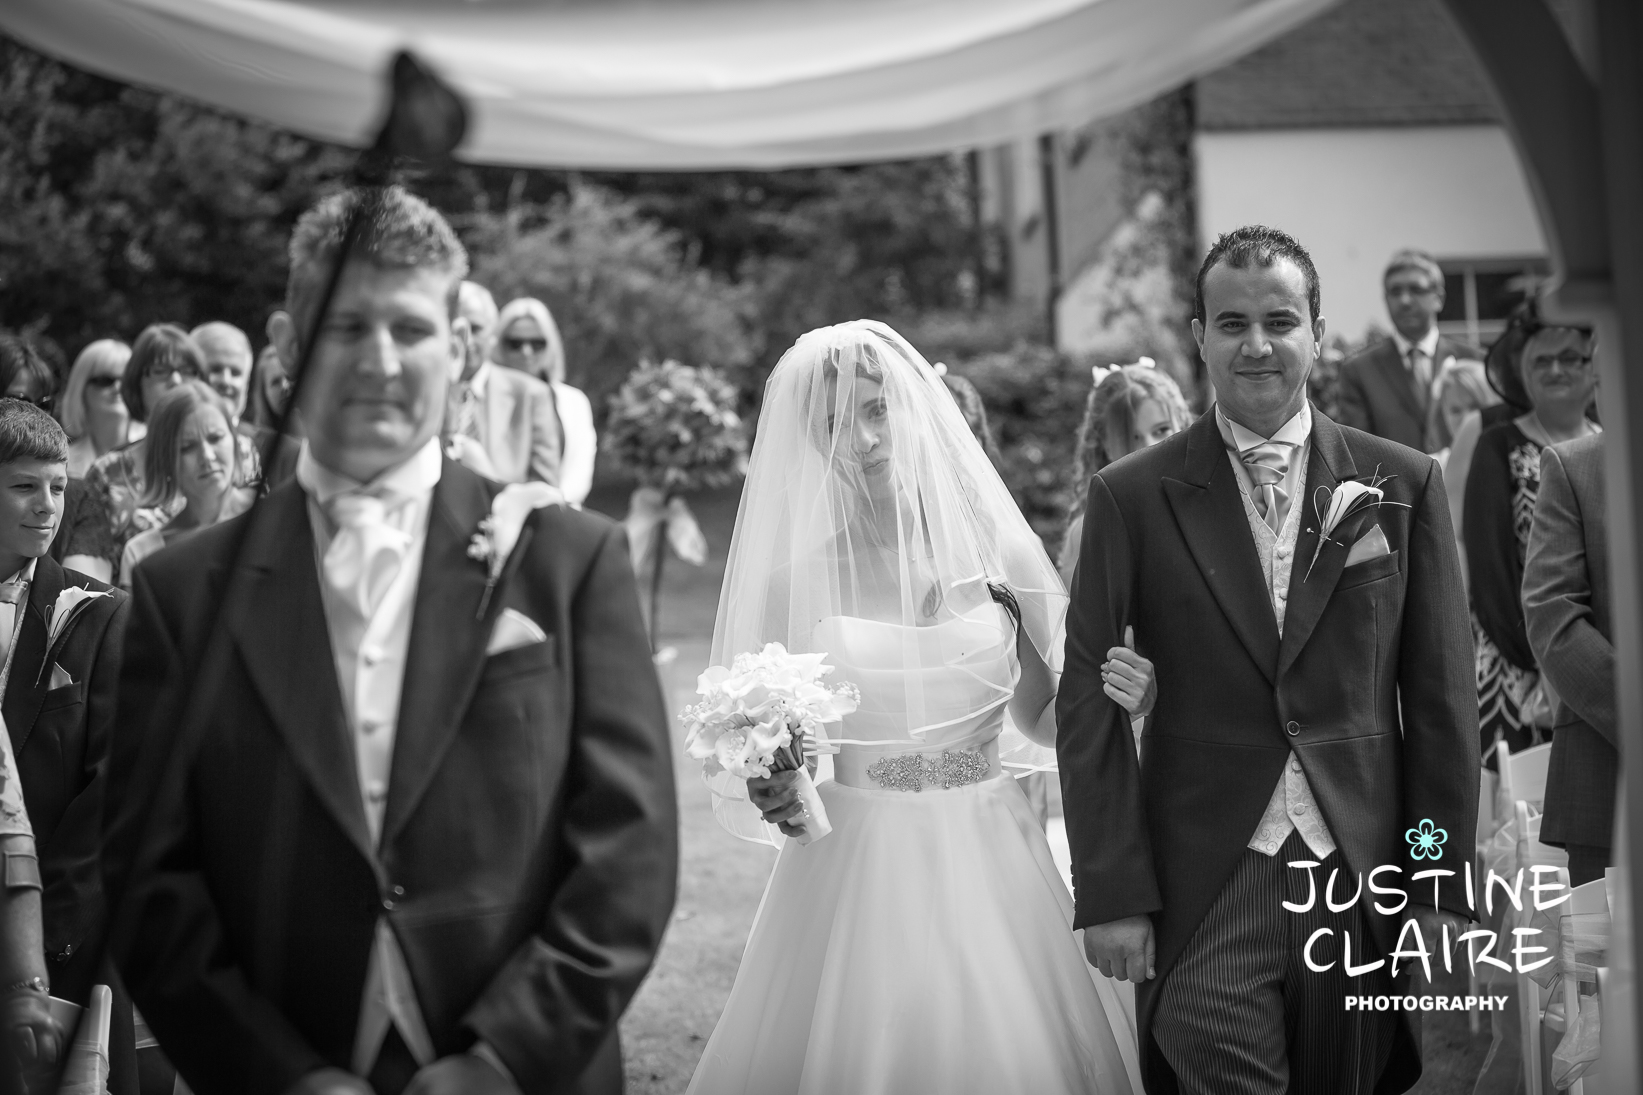 Alexander House wedding photographer photographers17.jpg